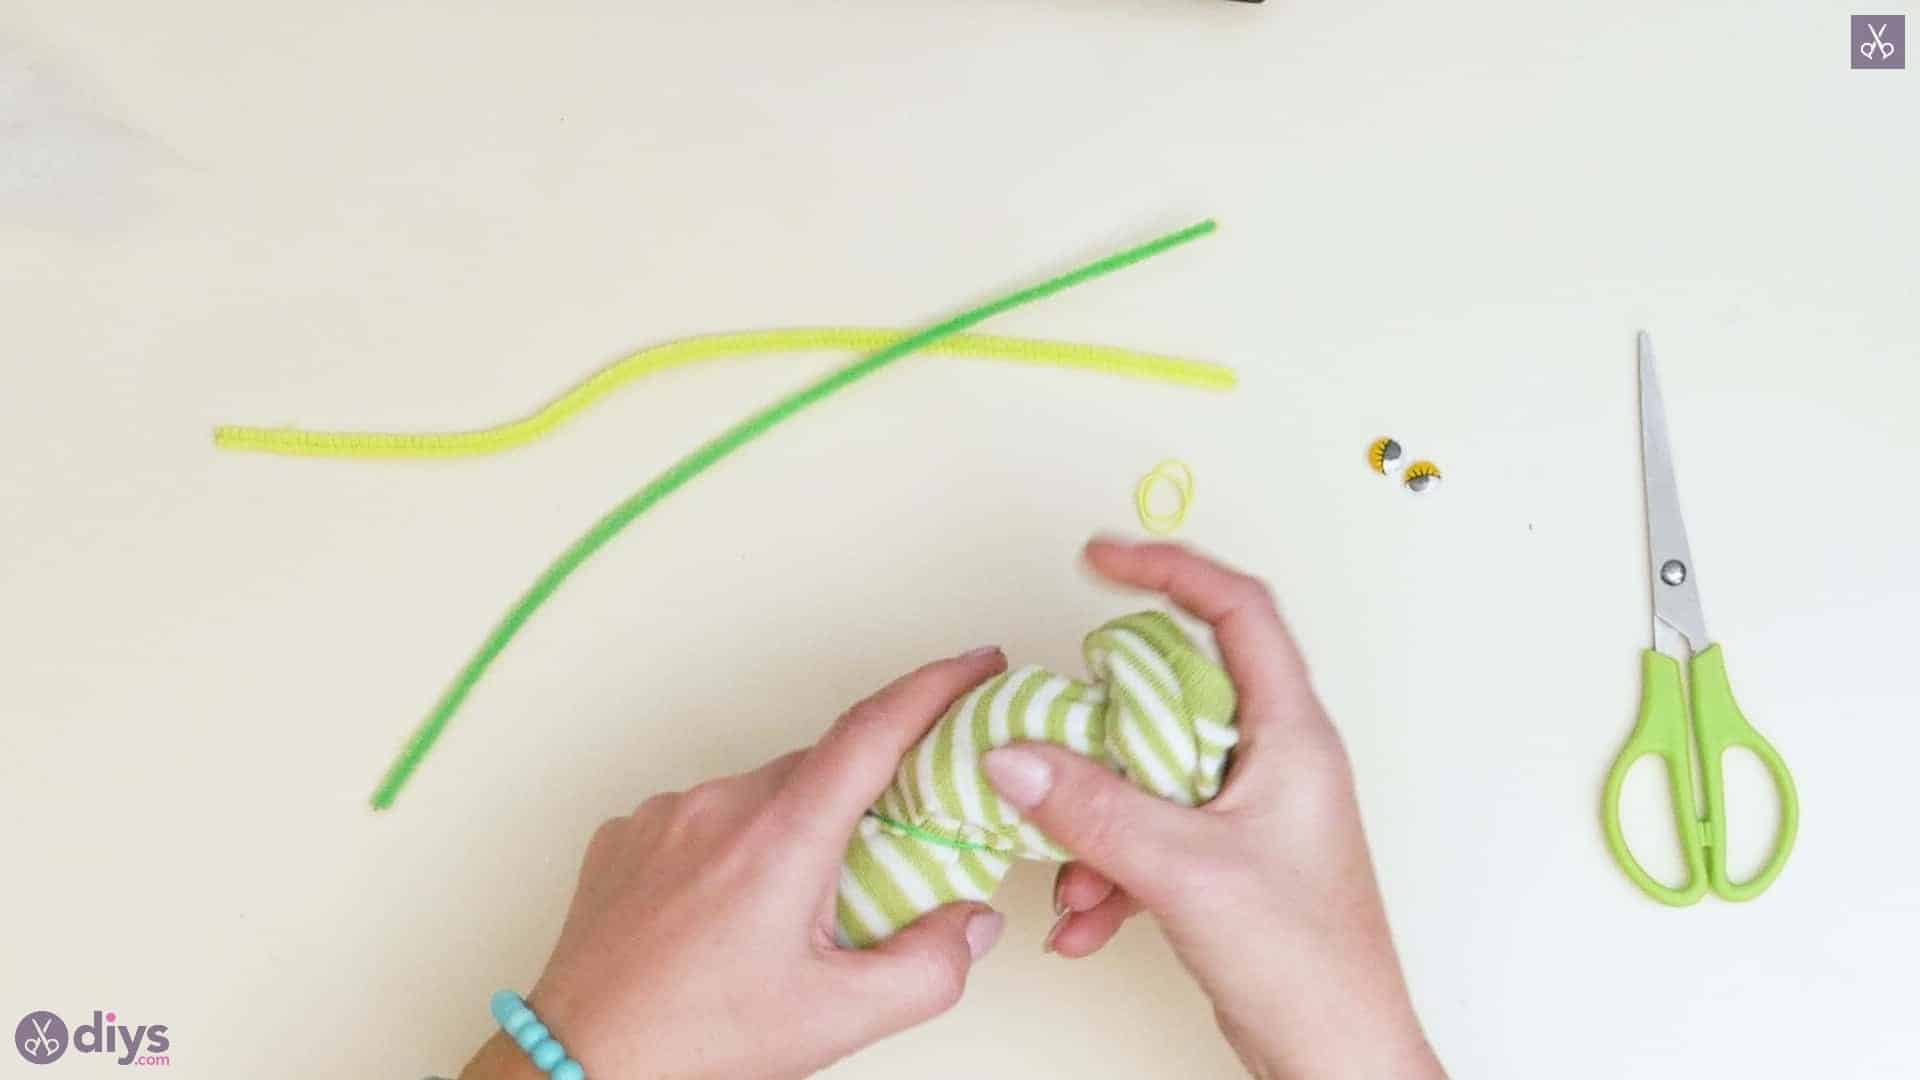 Diy no sew sock worm step 4b